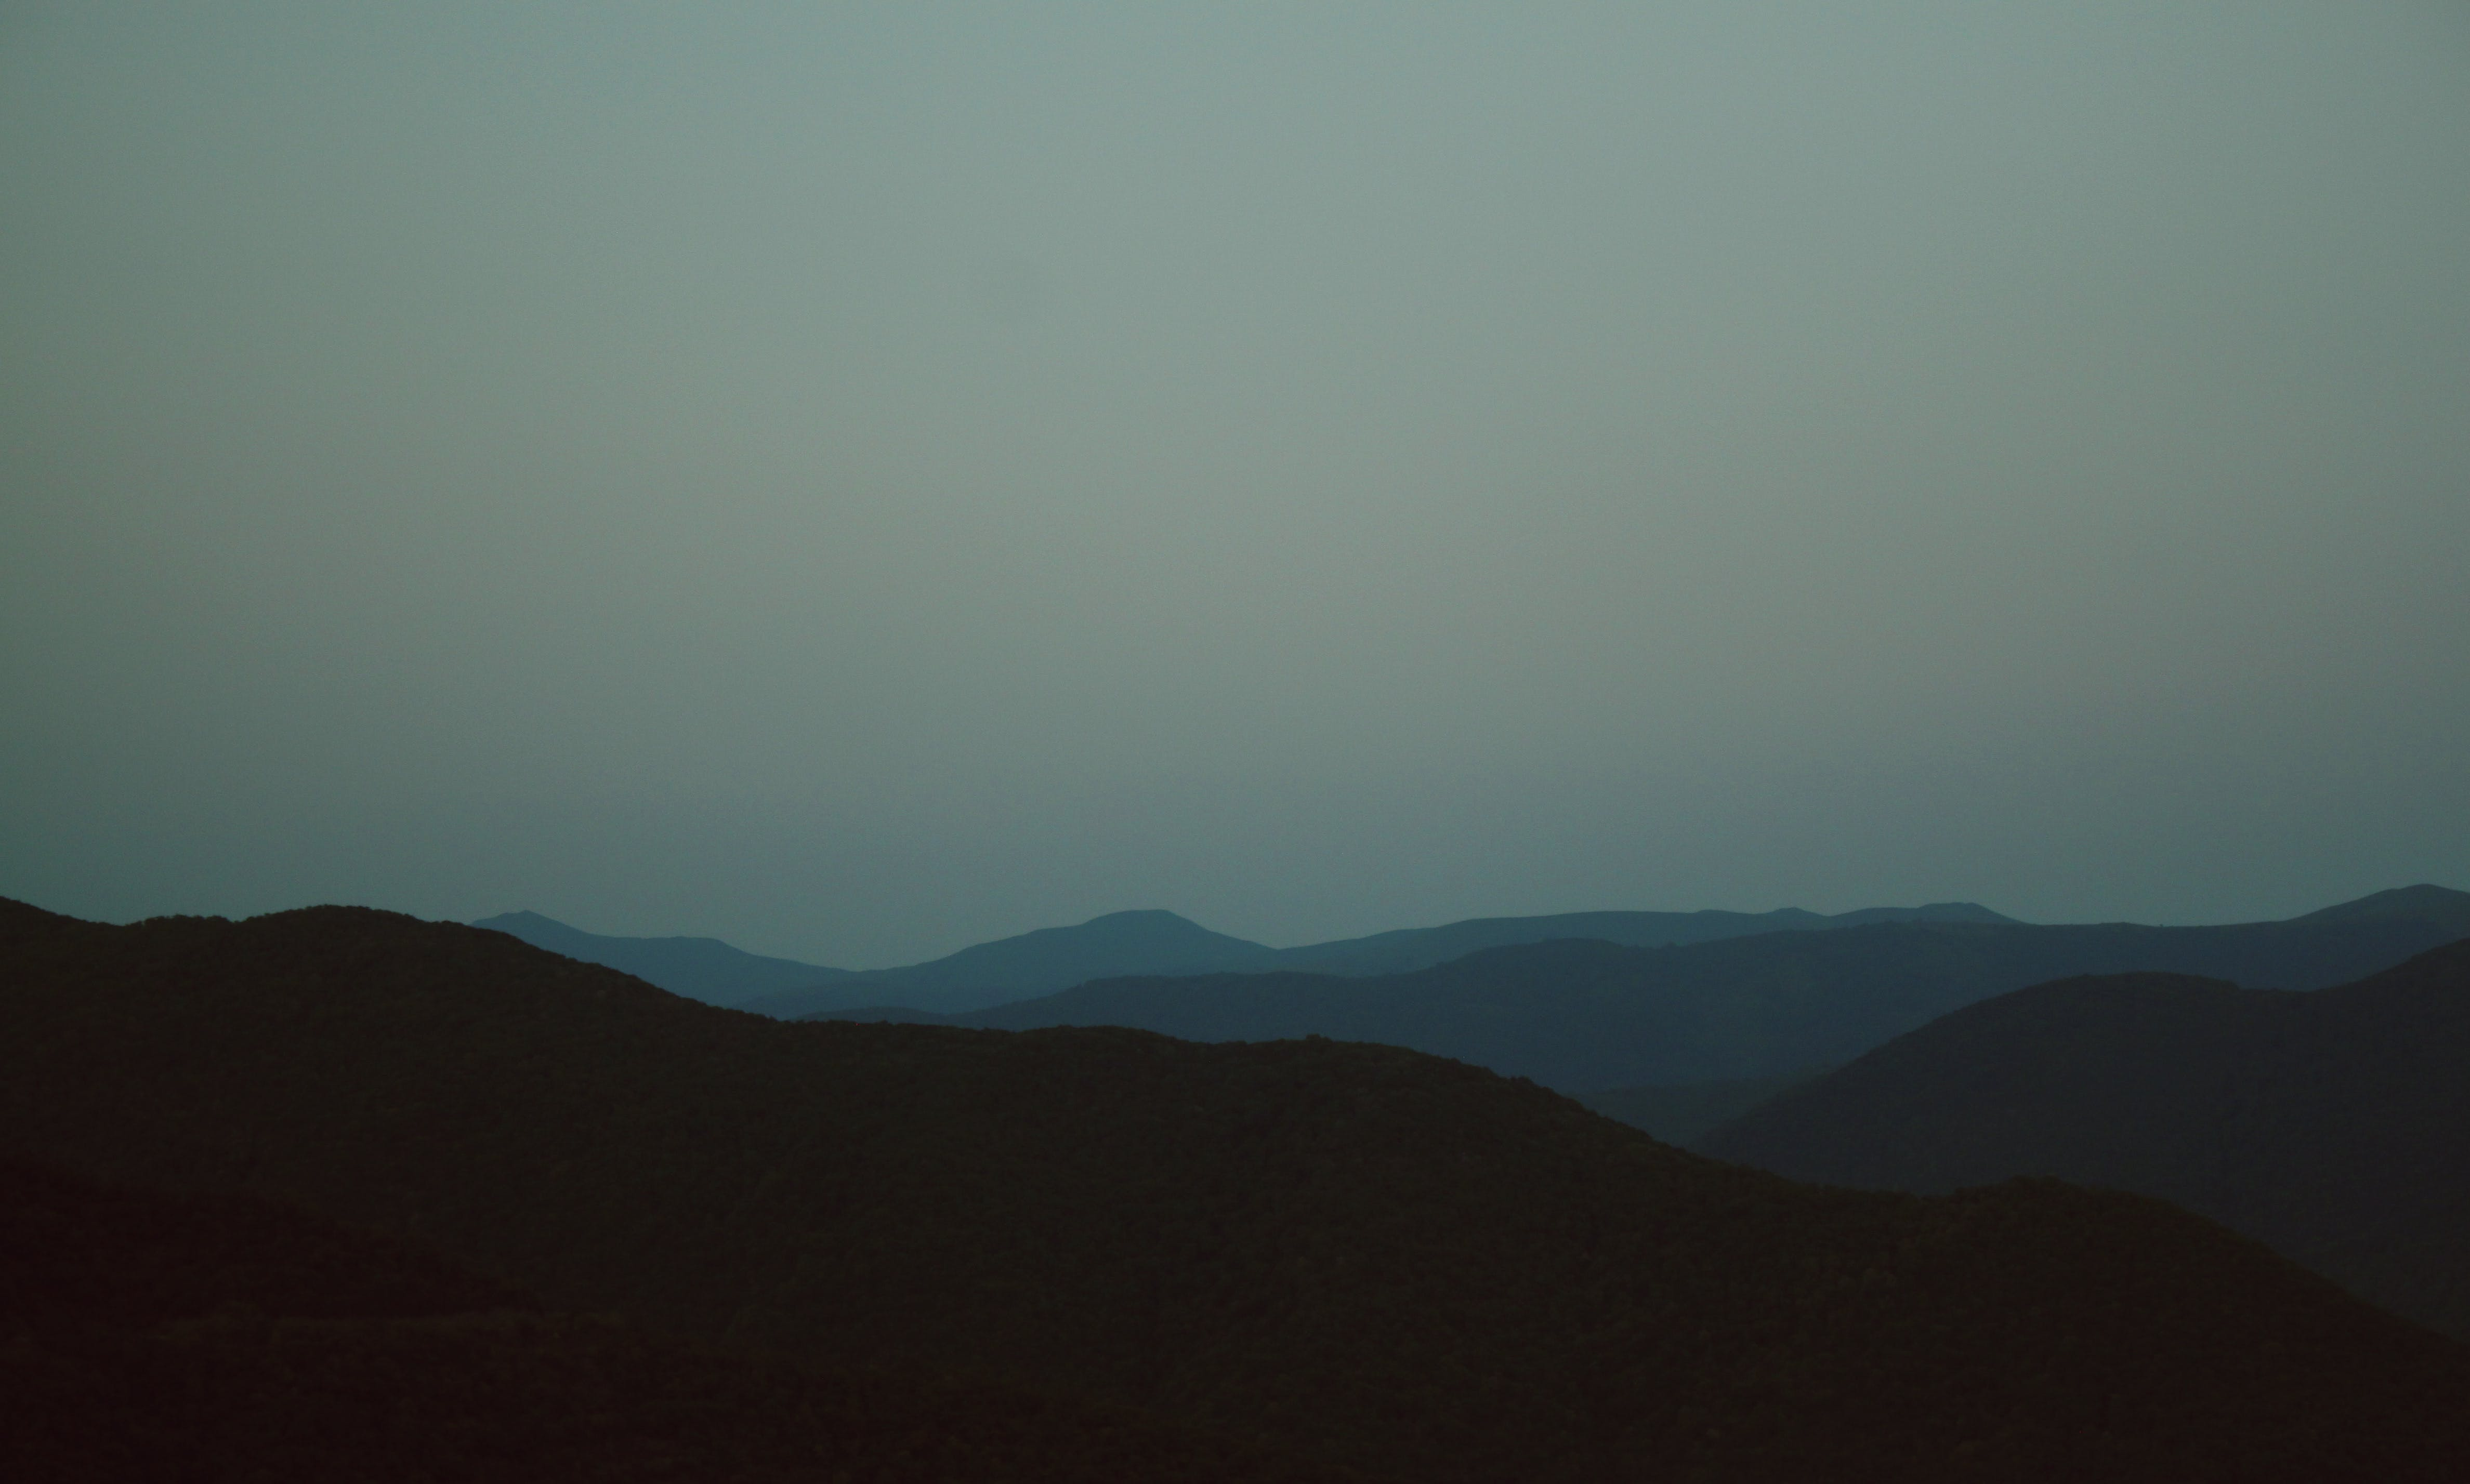 Silhouette of Hills